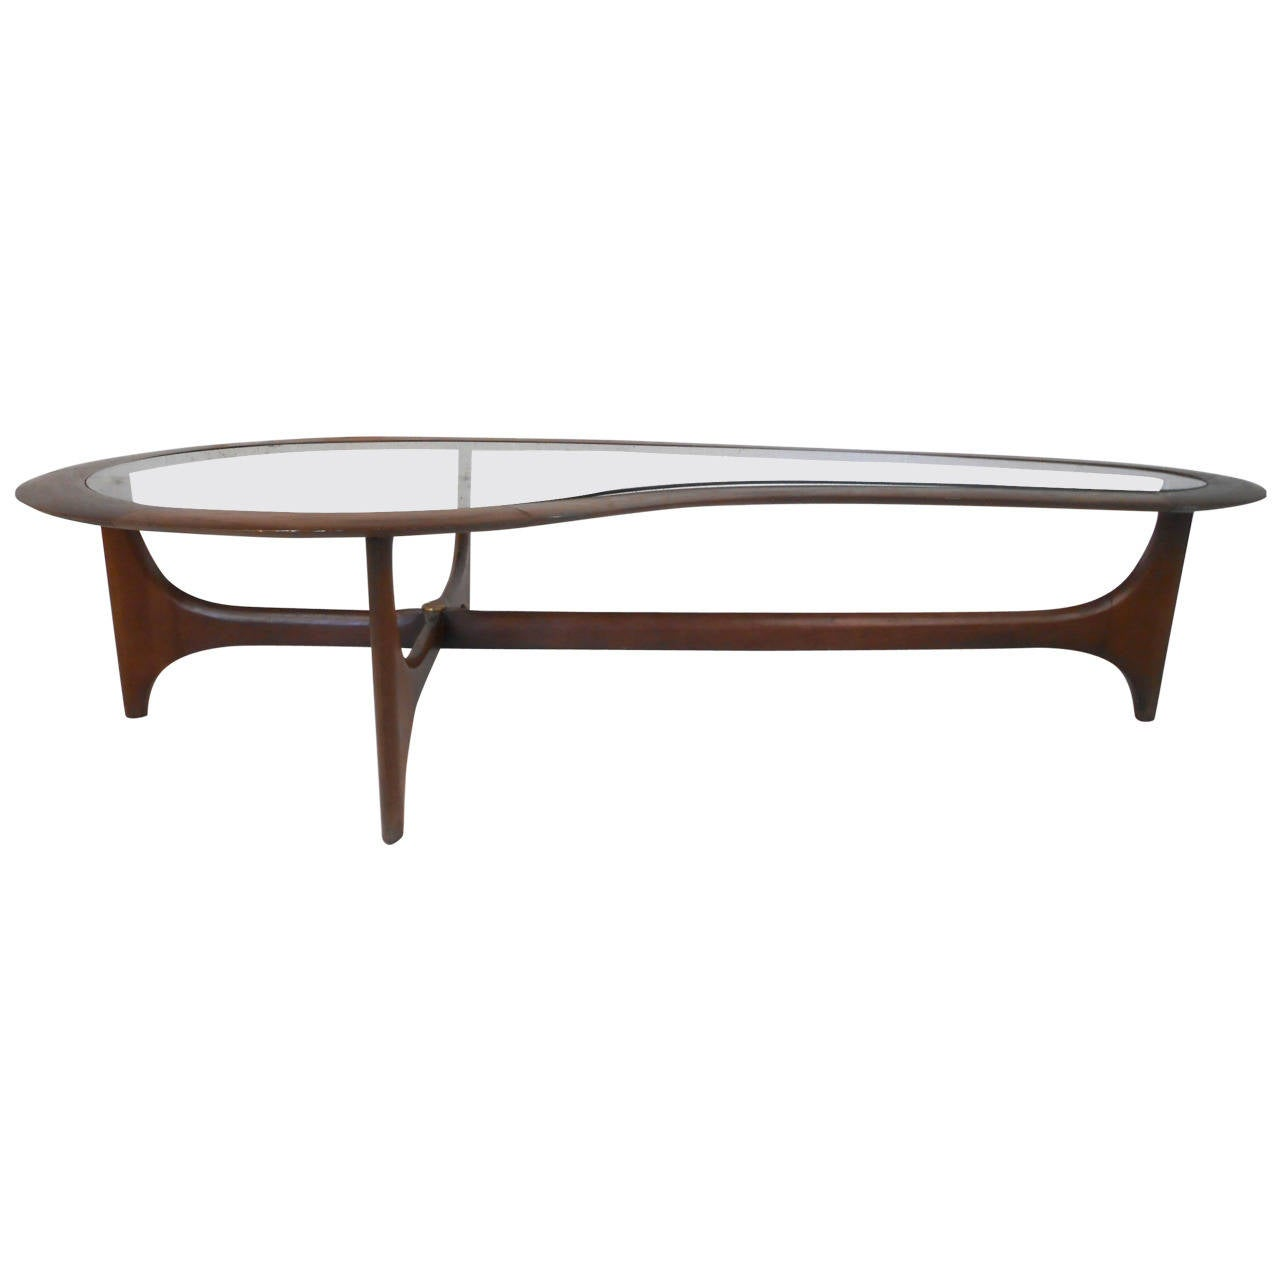 Mid century modern pearsall style kidney coffee table by lane at mid century modern pearsall style kidney coffee table by lane 1 geotapseo Choice Image